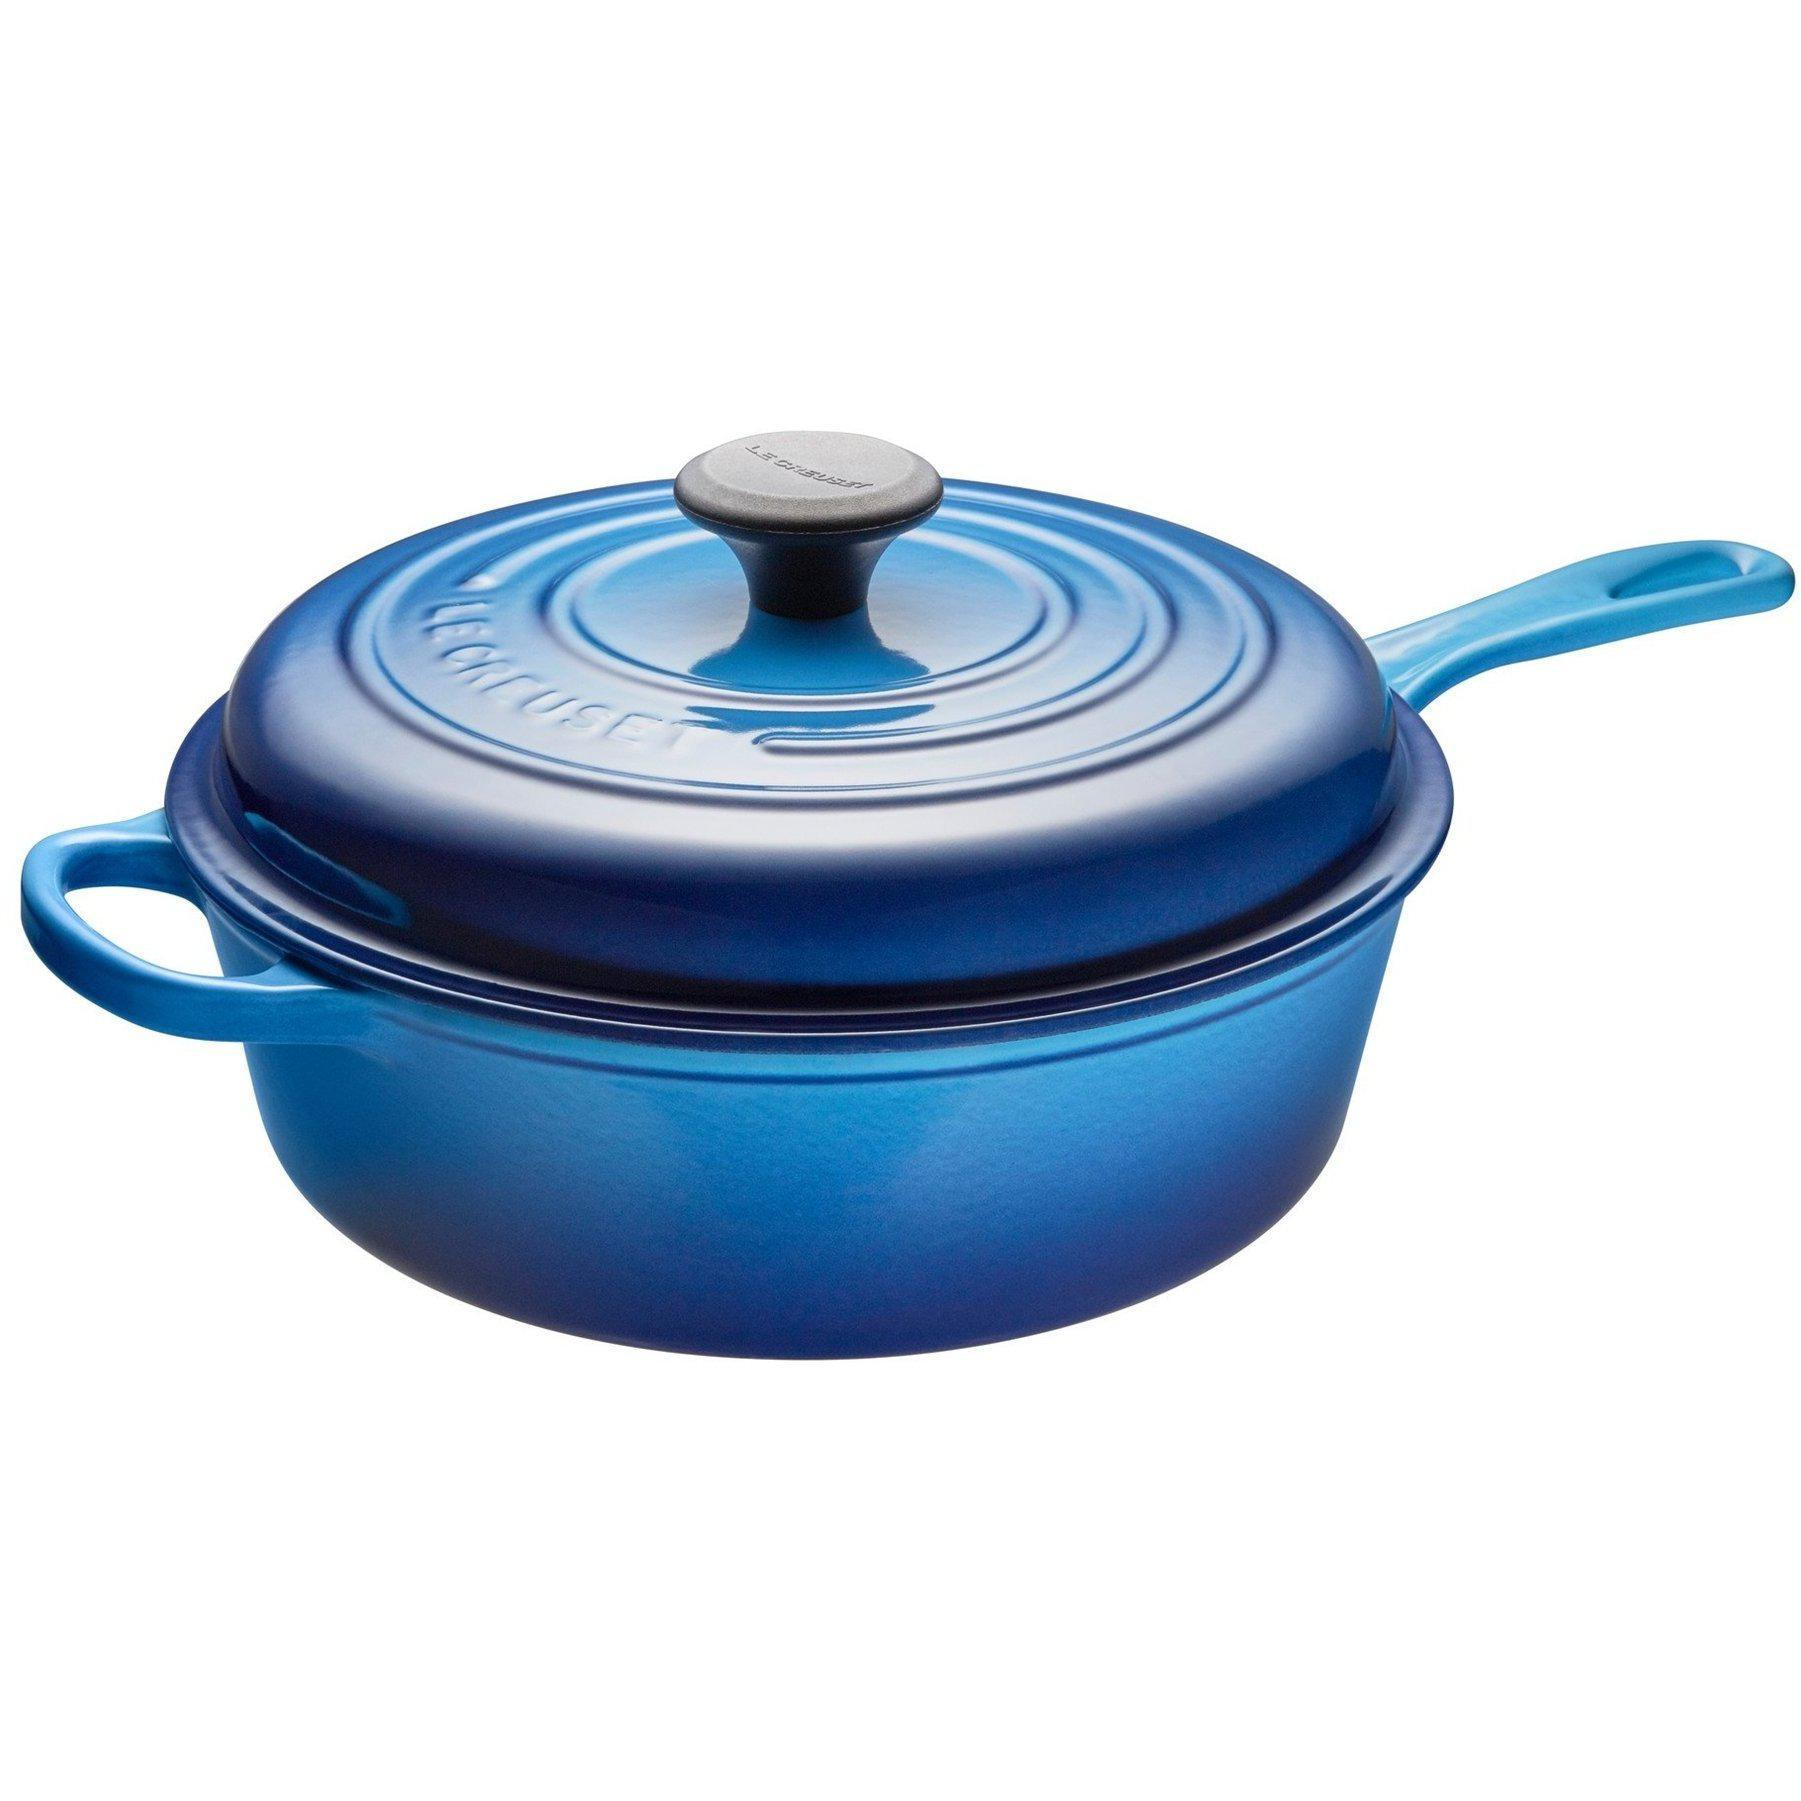 Le Creuset 3.6L Blueberry Sauté Pan-Consiglio's Kitchenware